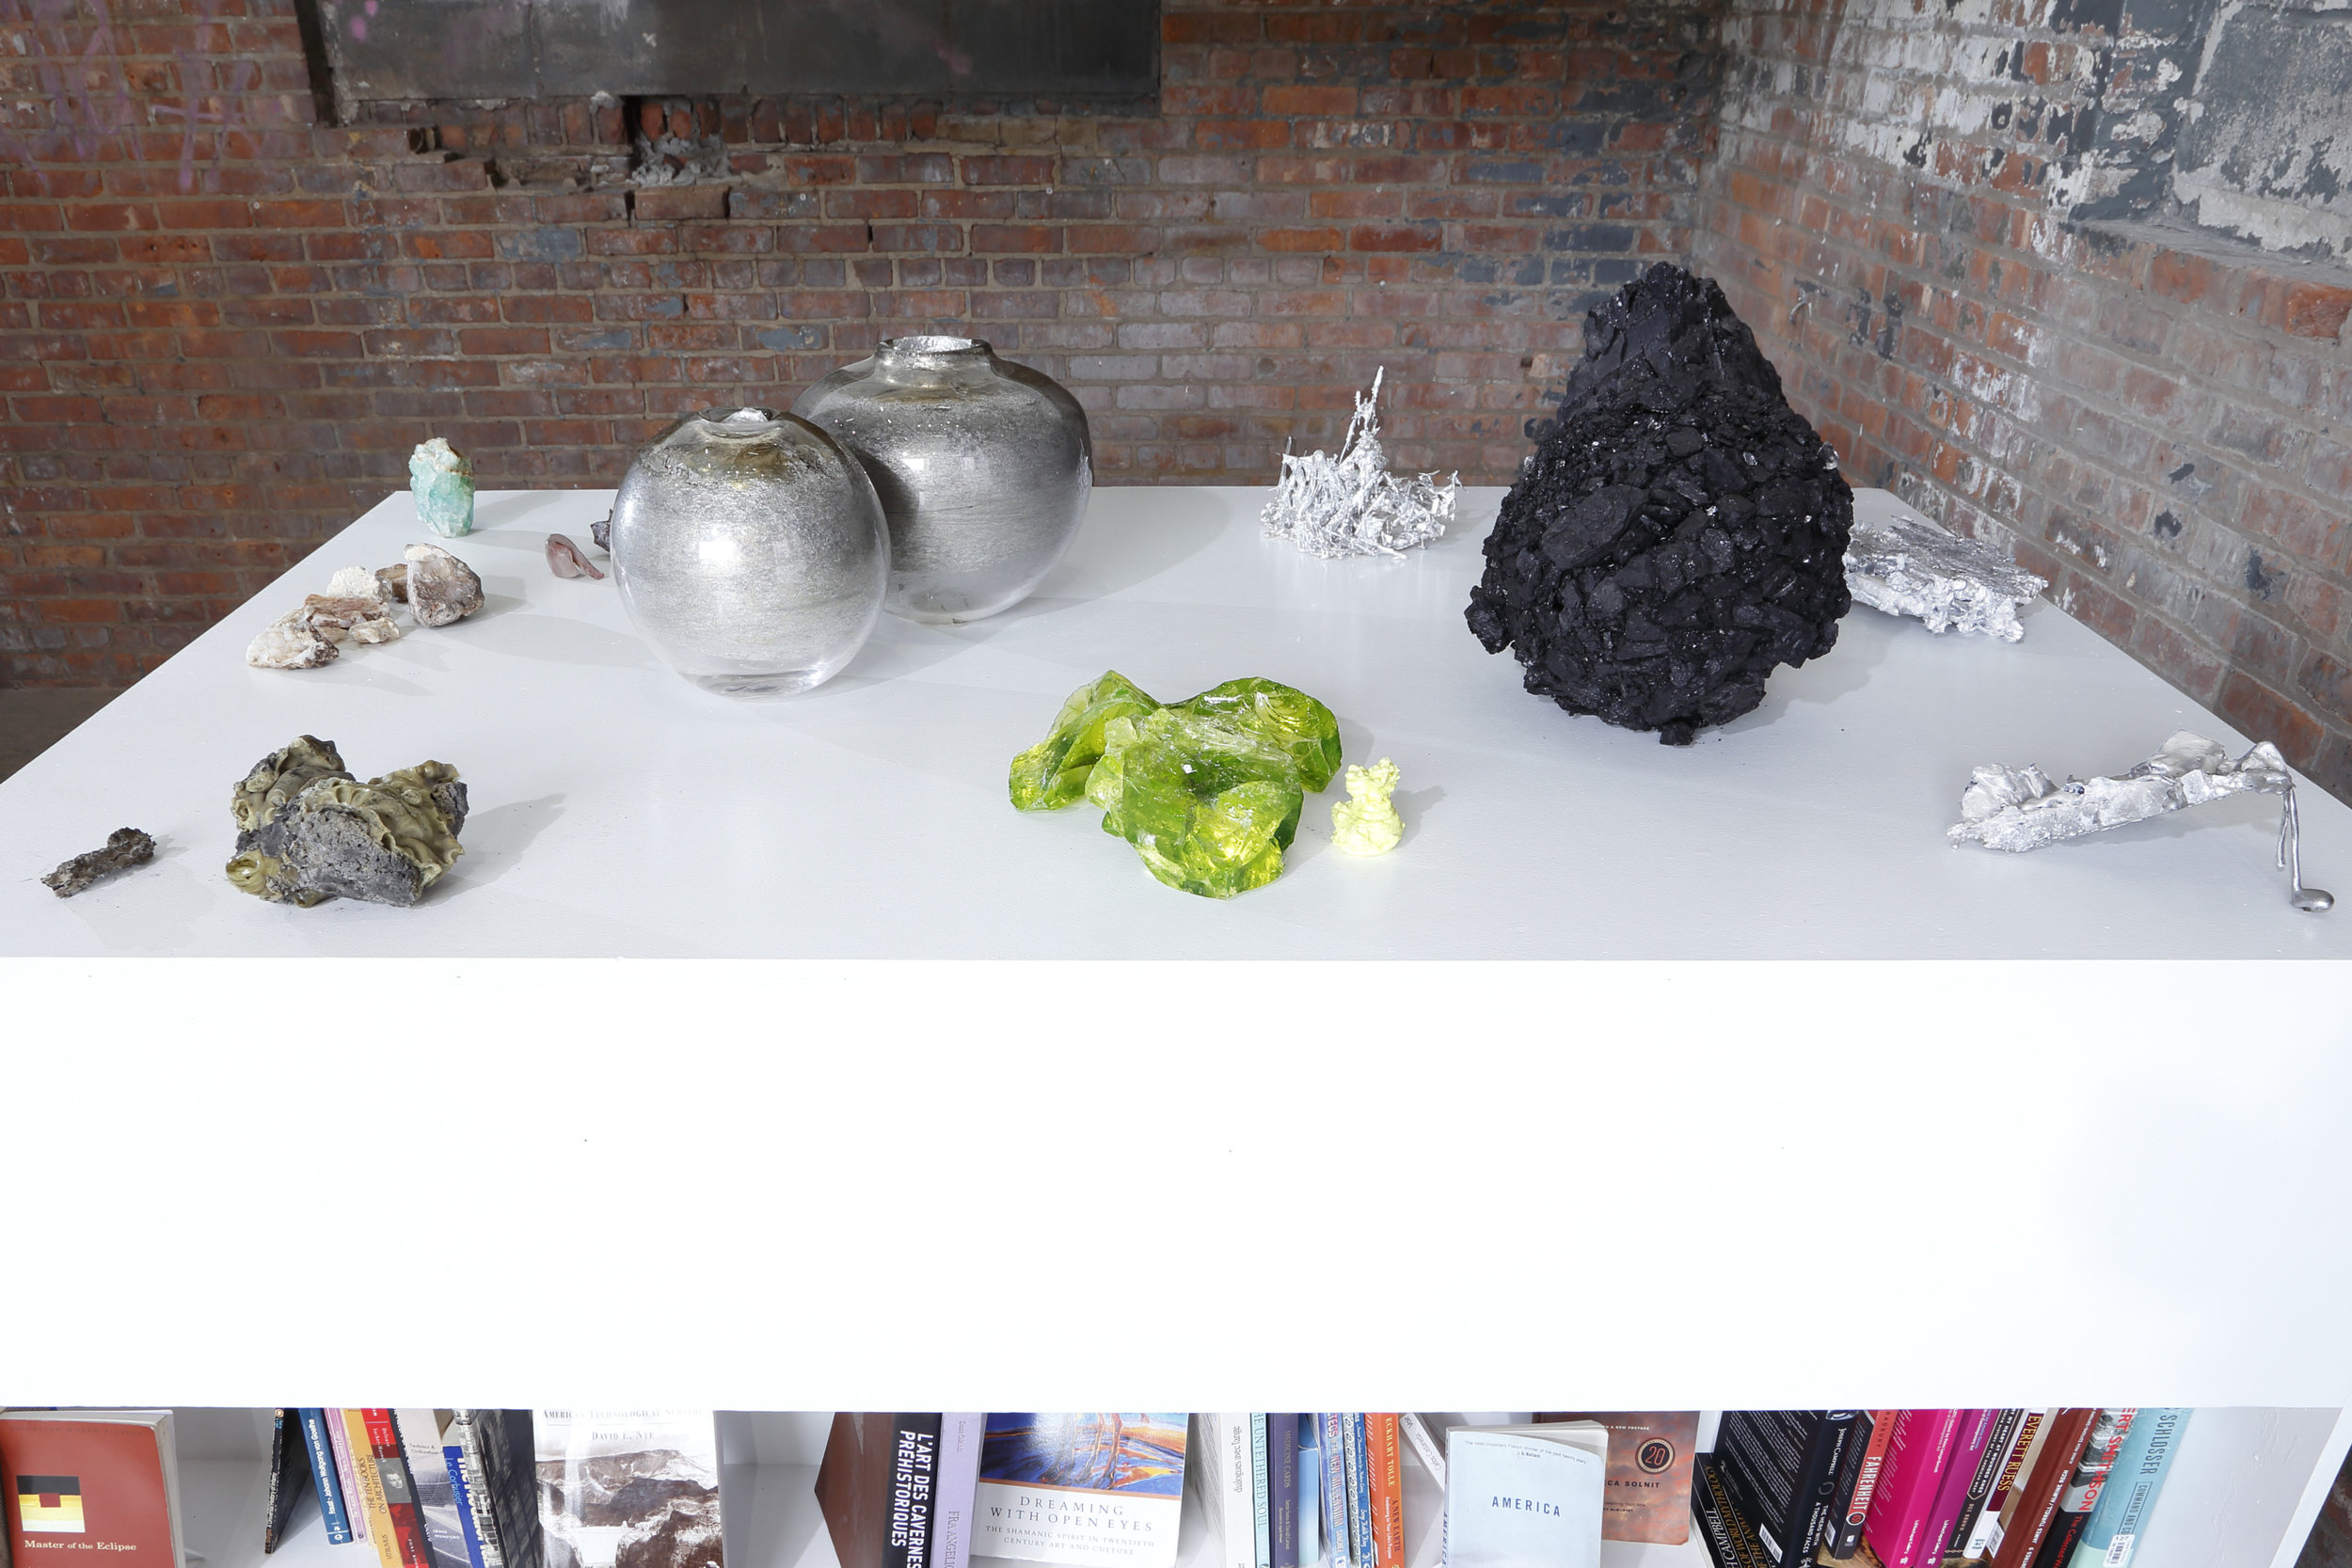 Installation view, The Chimney NYC, 2018